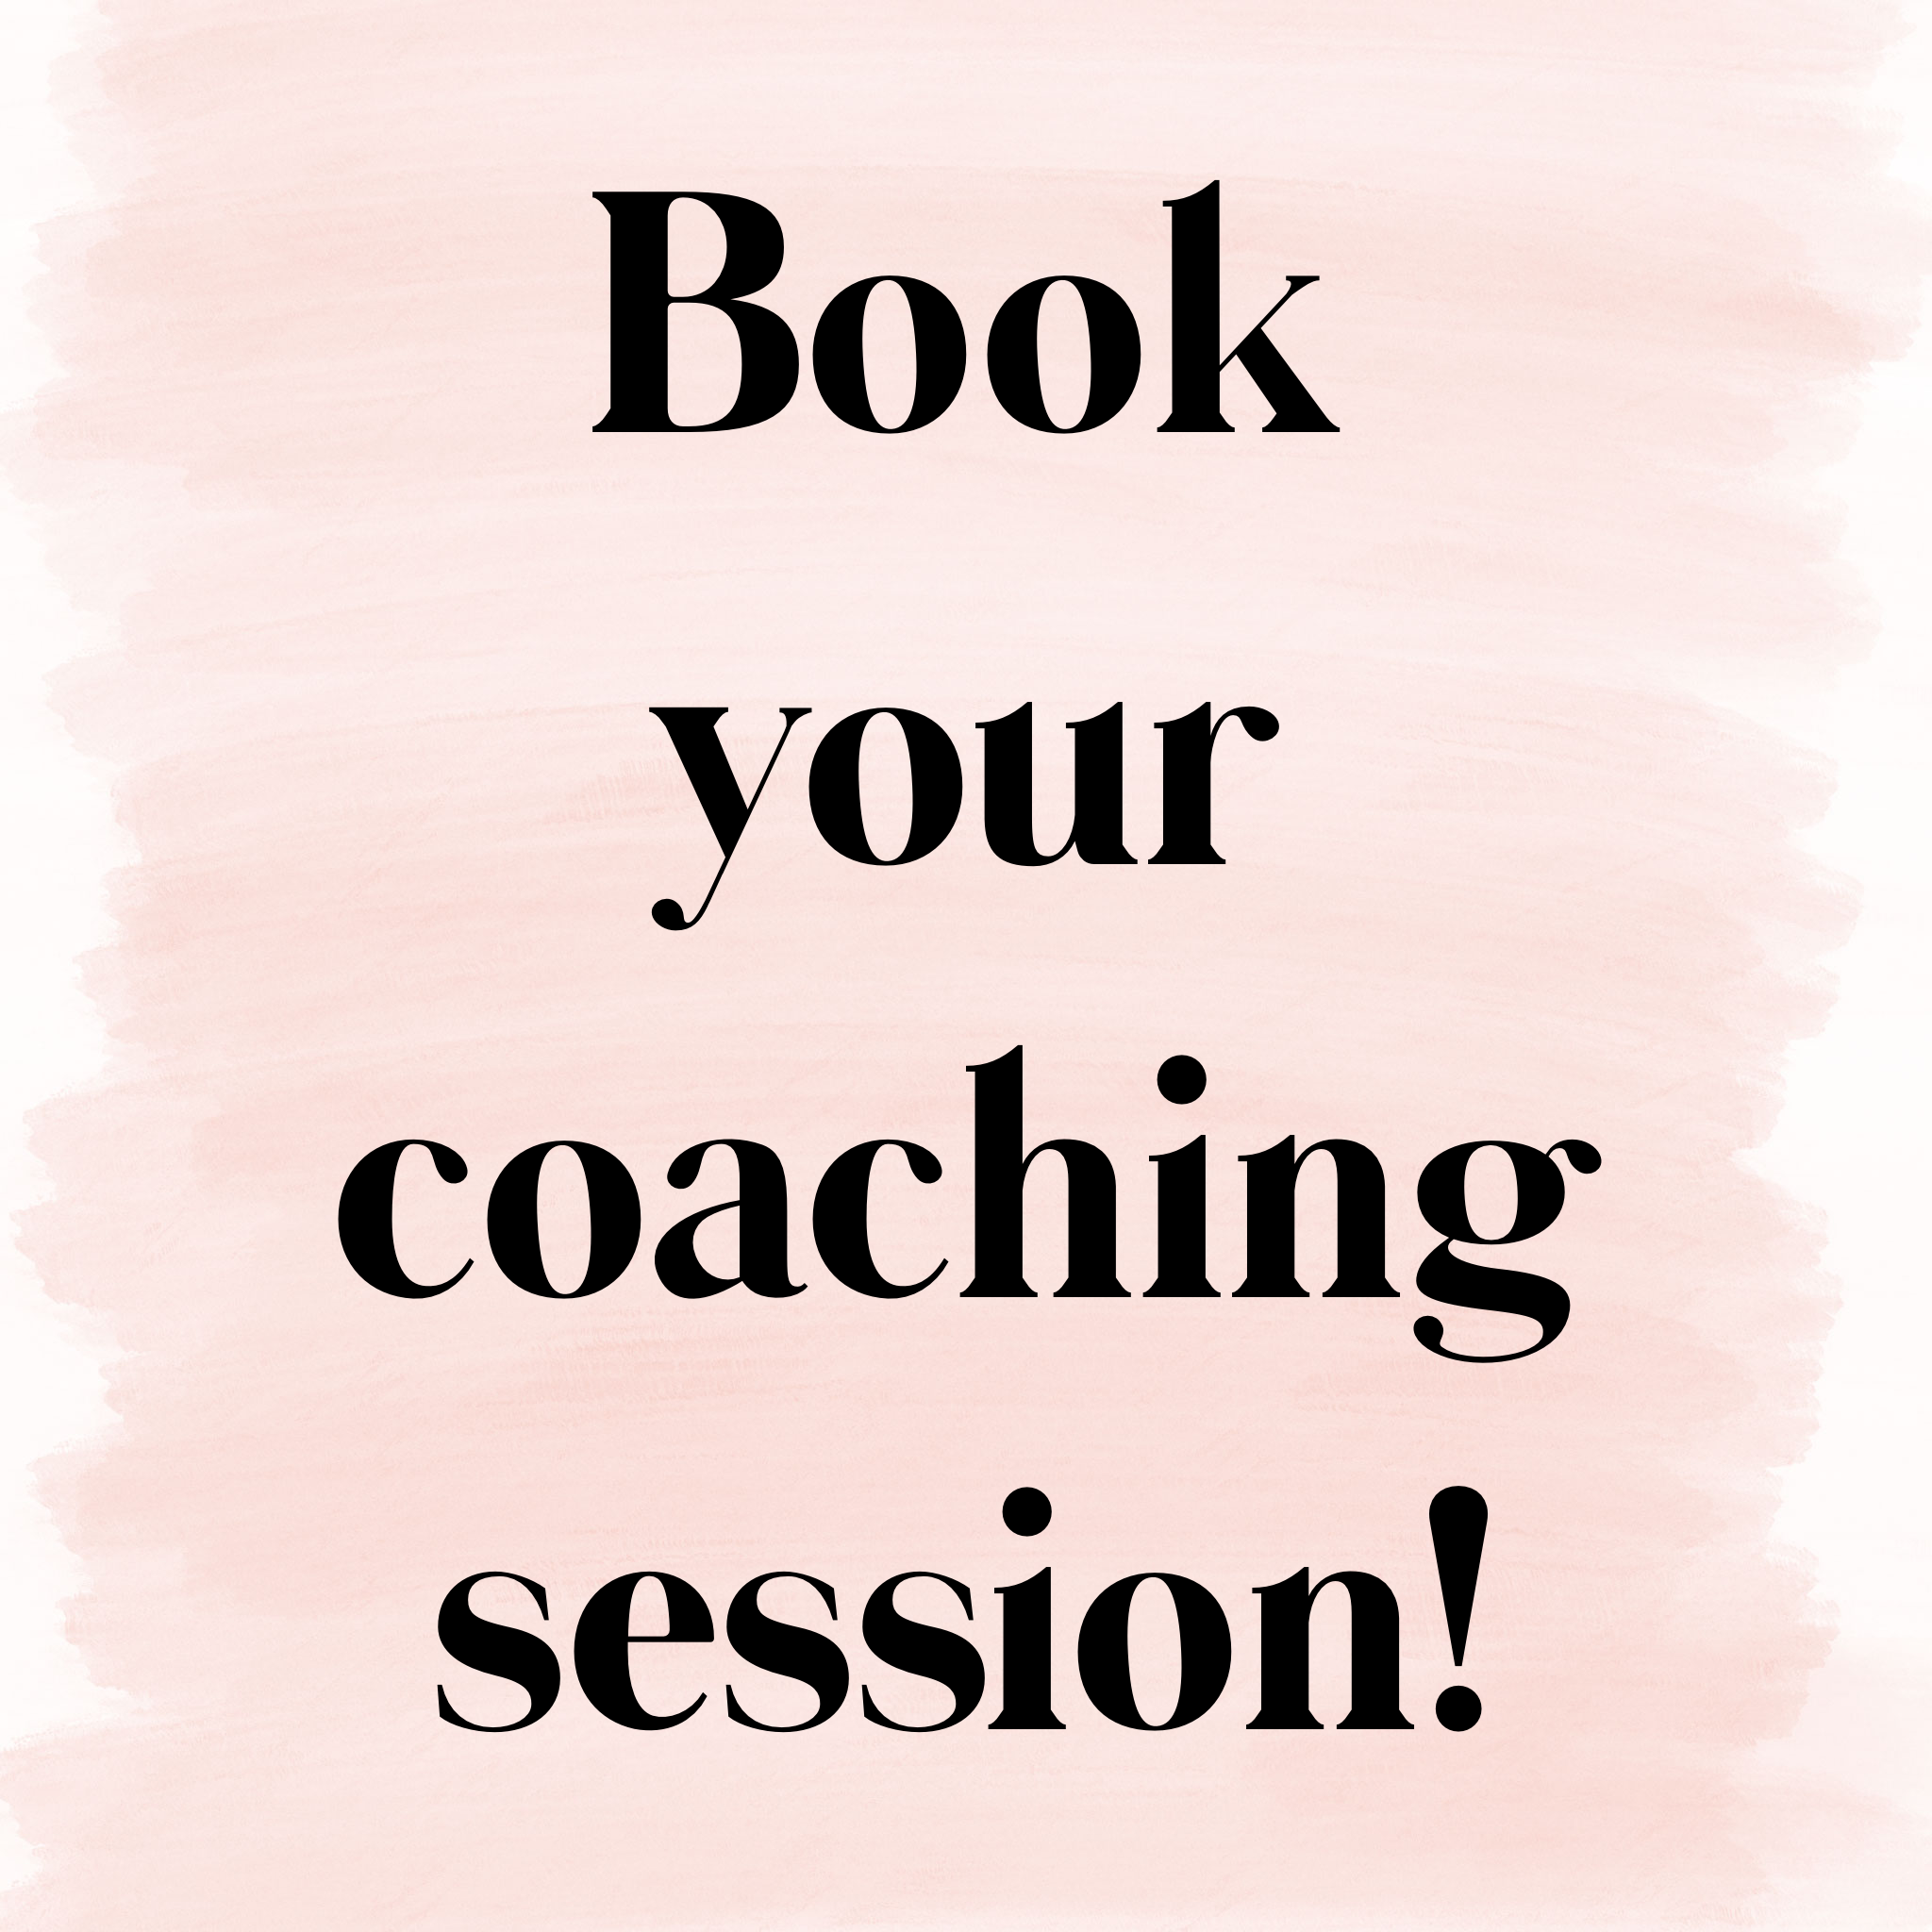 book coaching session